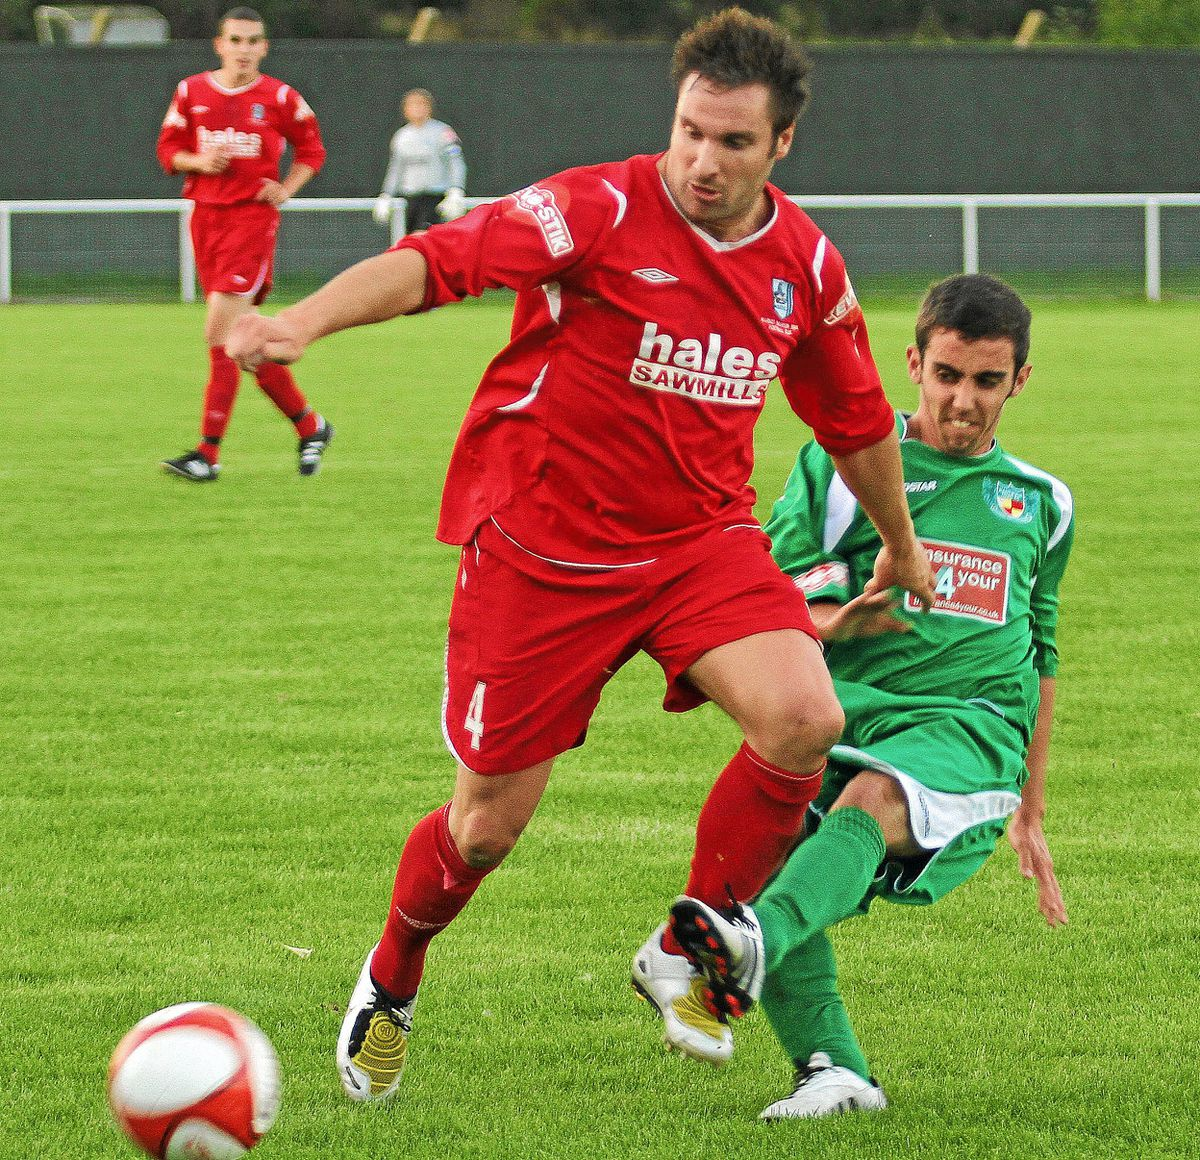 Former Shrewsbury Town star Steve Jagielka in action for Market Drayton Town against Nantwich. Picture by Terry Morris.